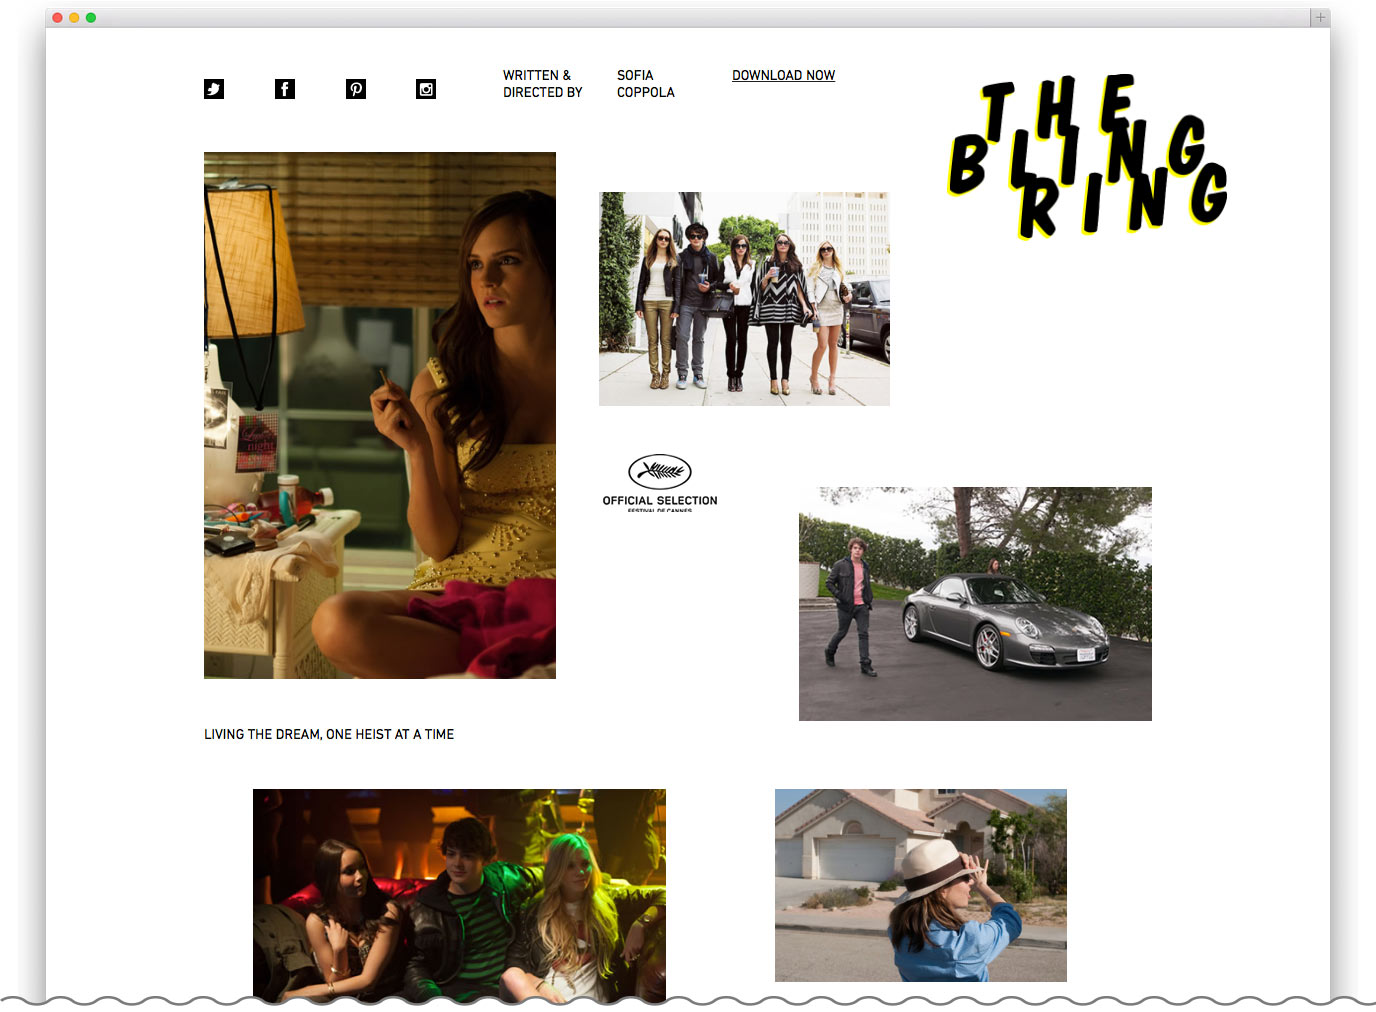 Bling Ring Website